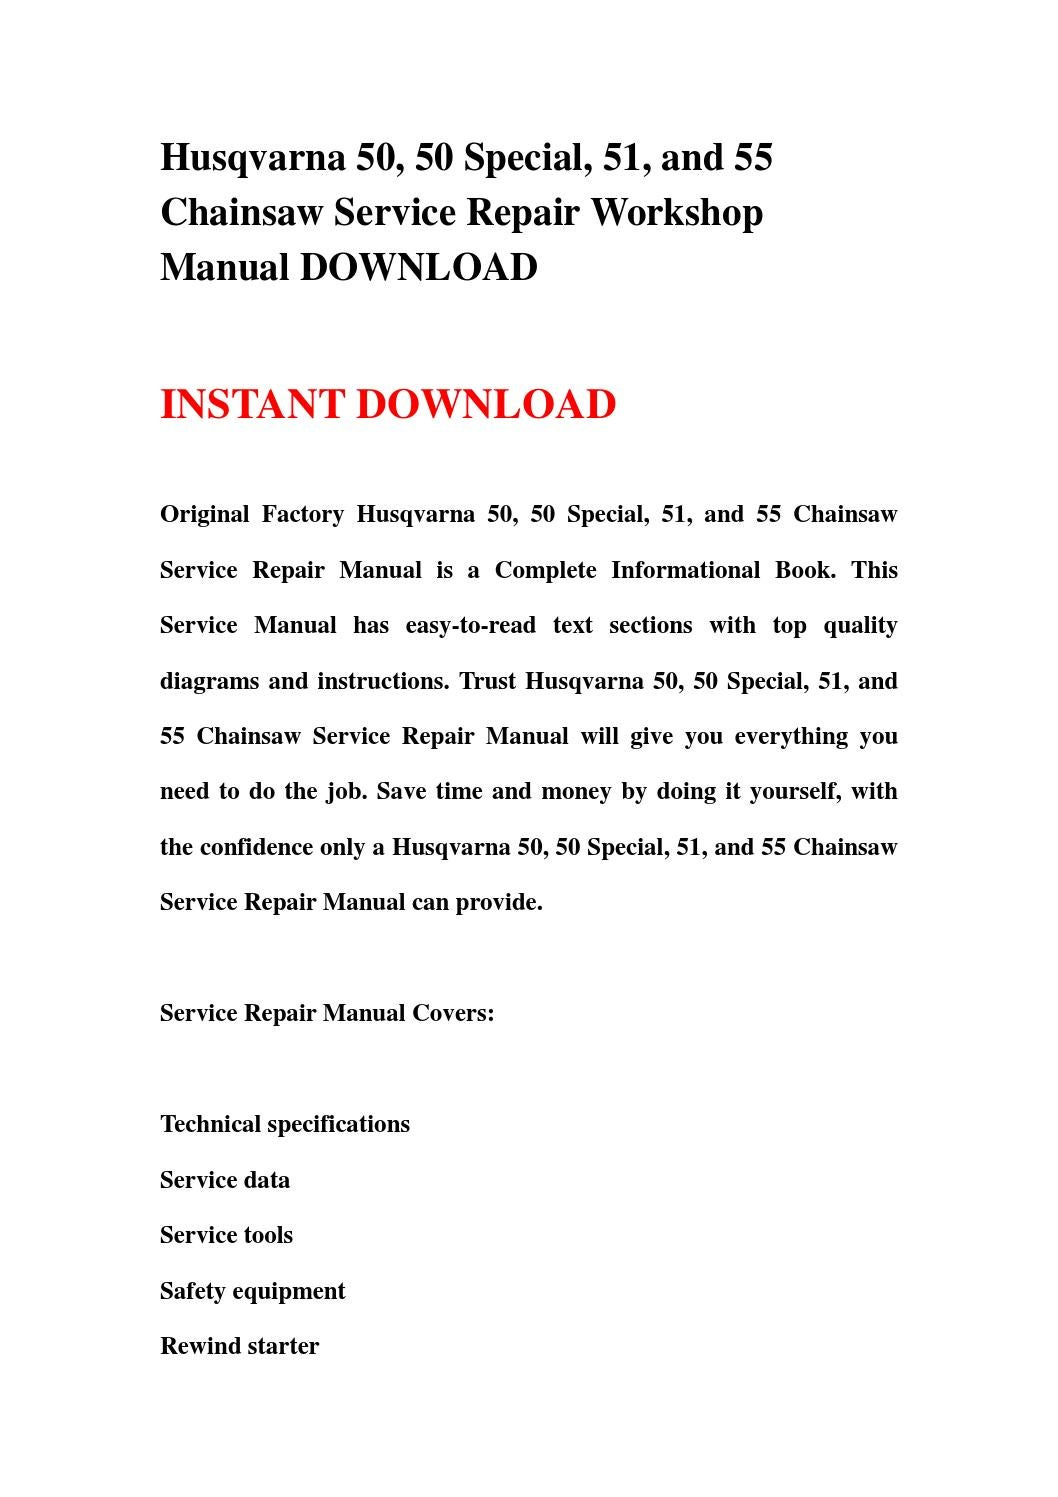 Husqvarna 50, 50 special, 51, and 55 chainsaw service repair workshop manual  download by hgsehn - issuu